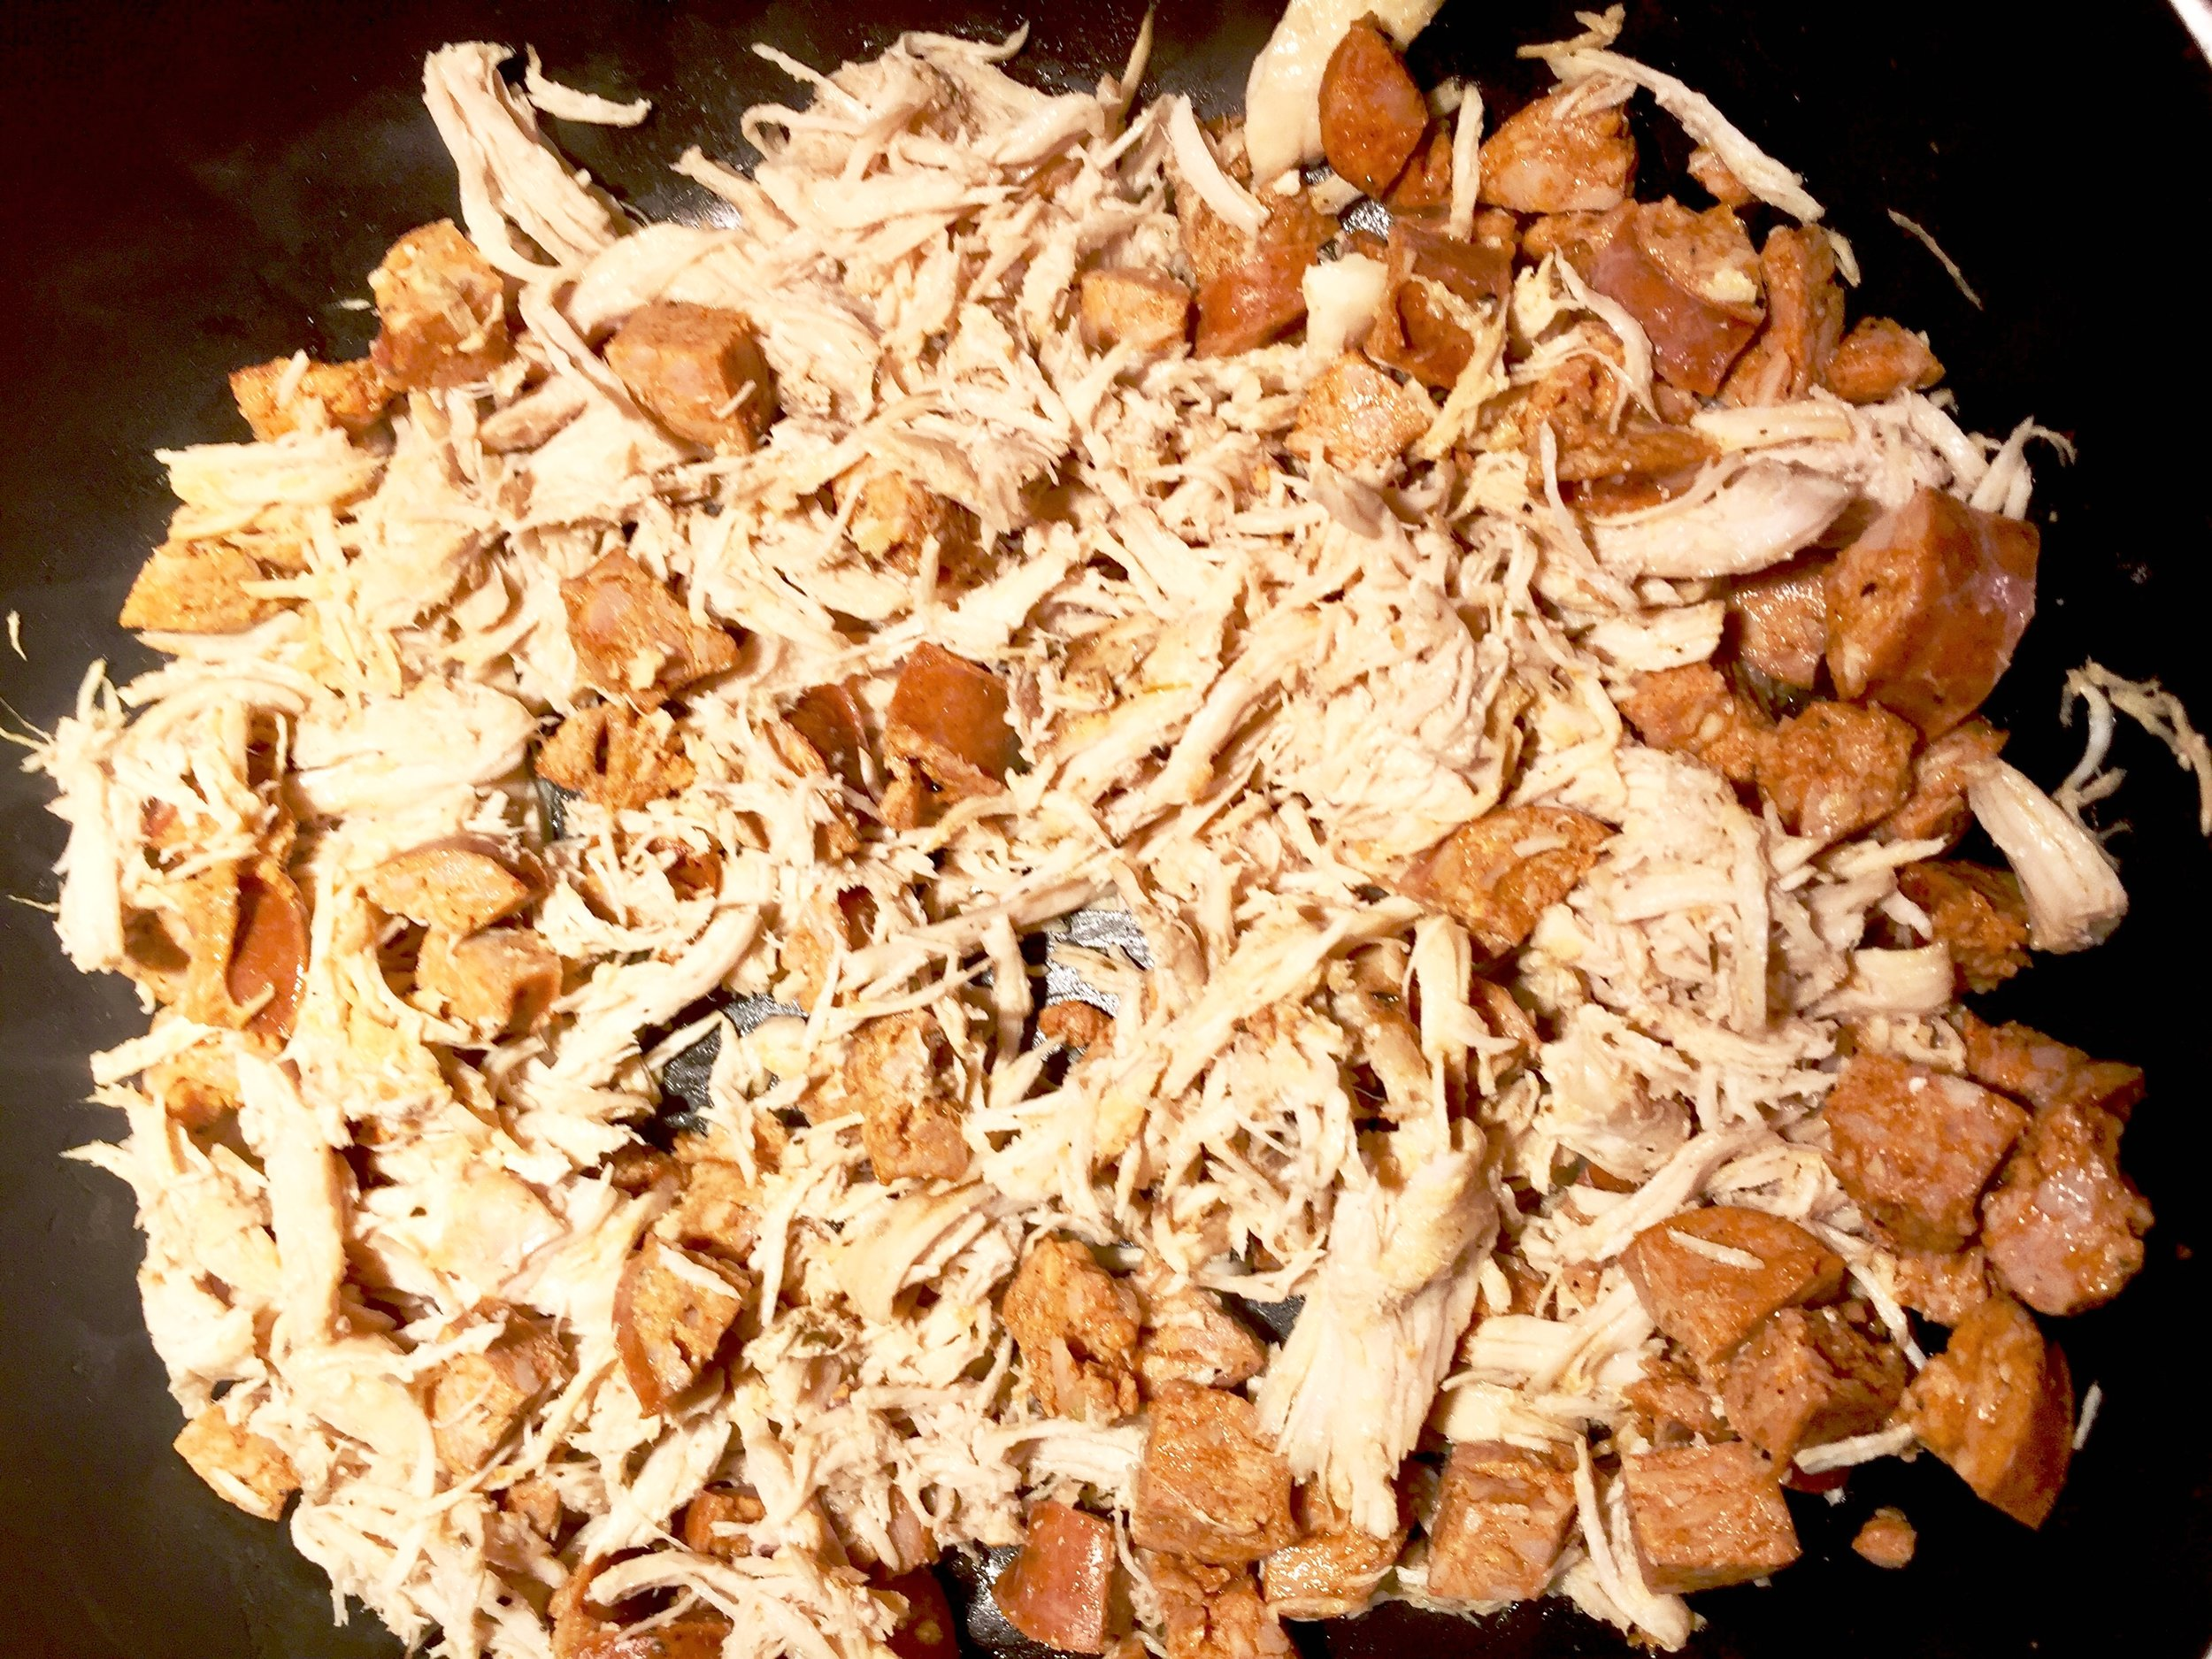 Shredded chicken and Andouille sausage